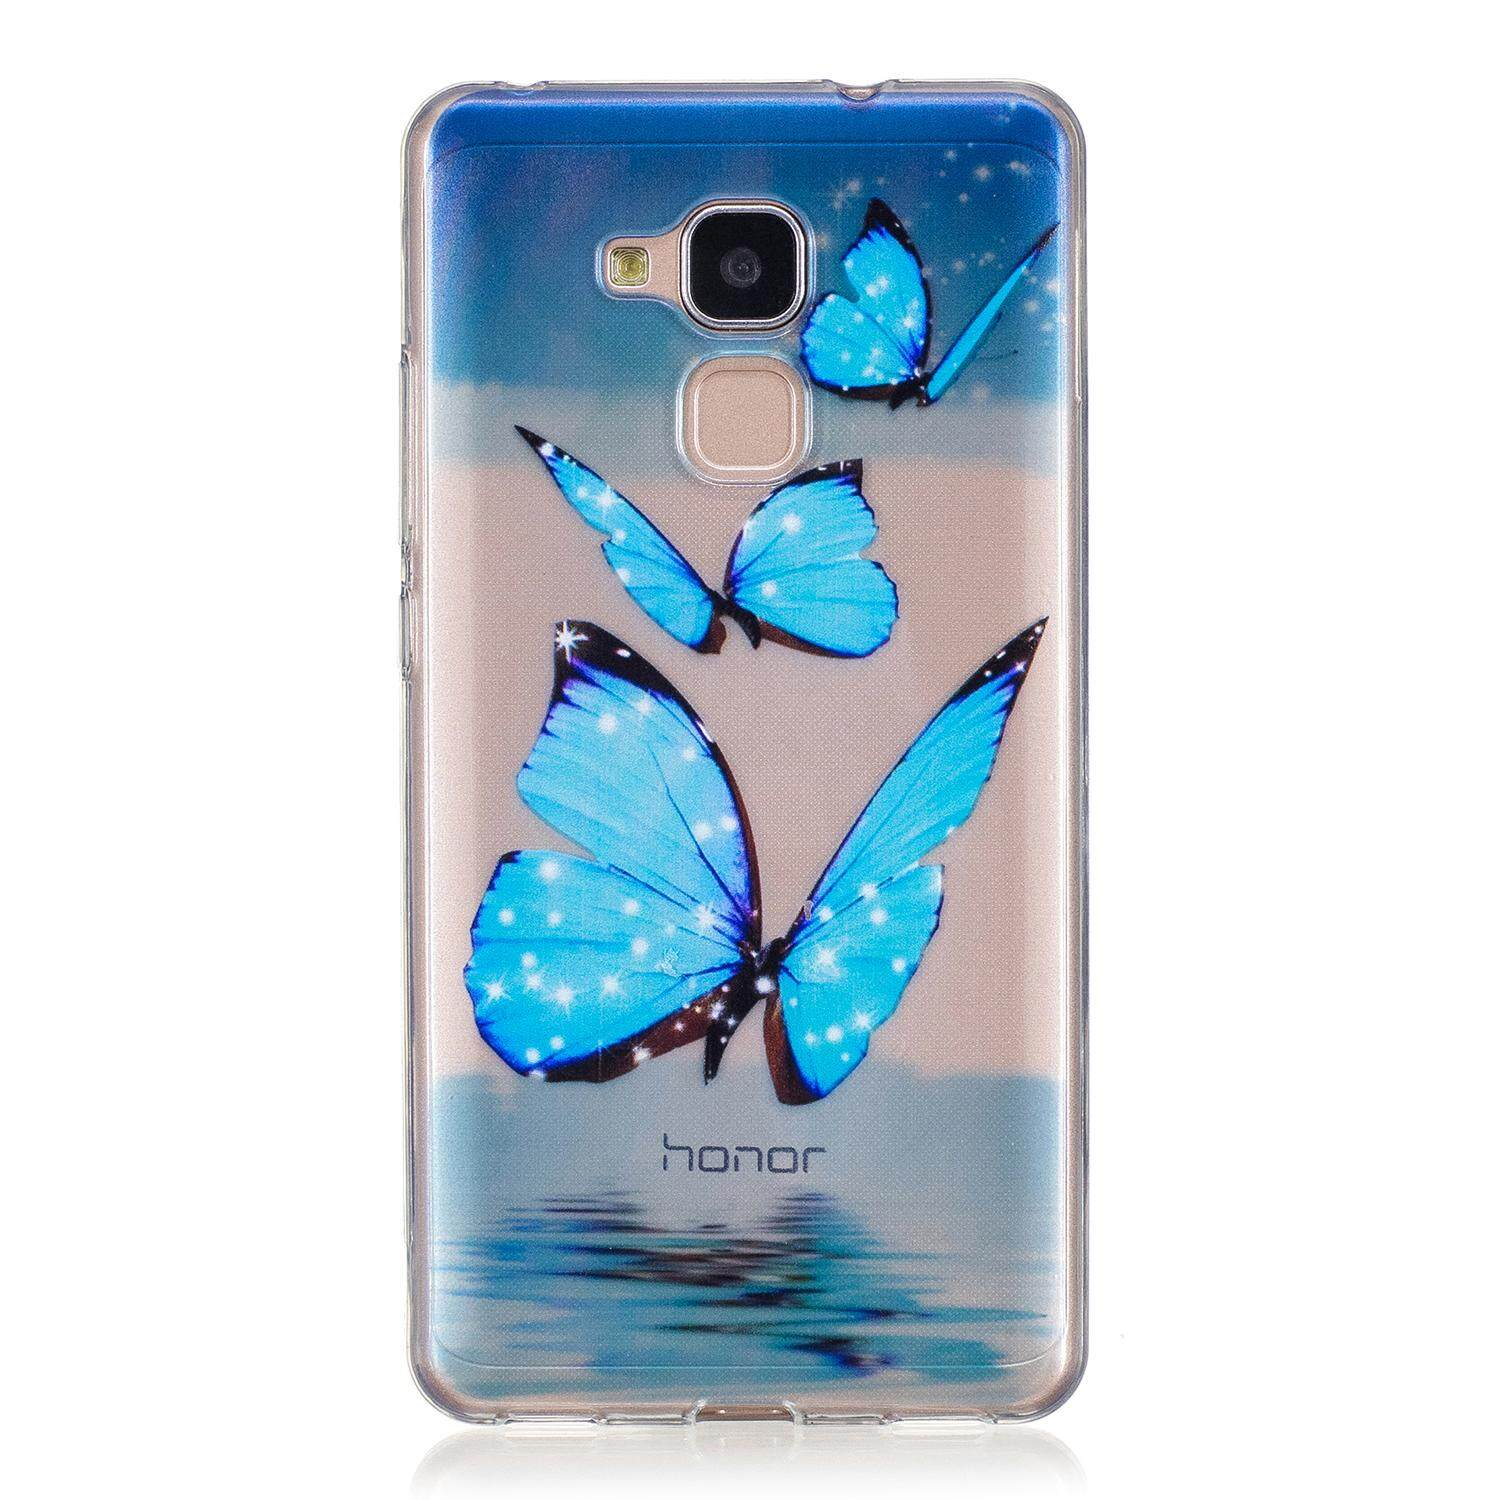 Case Cover Protective Shell - intlVND125000. VND 125.000 .